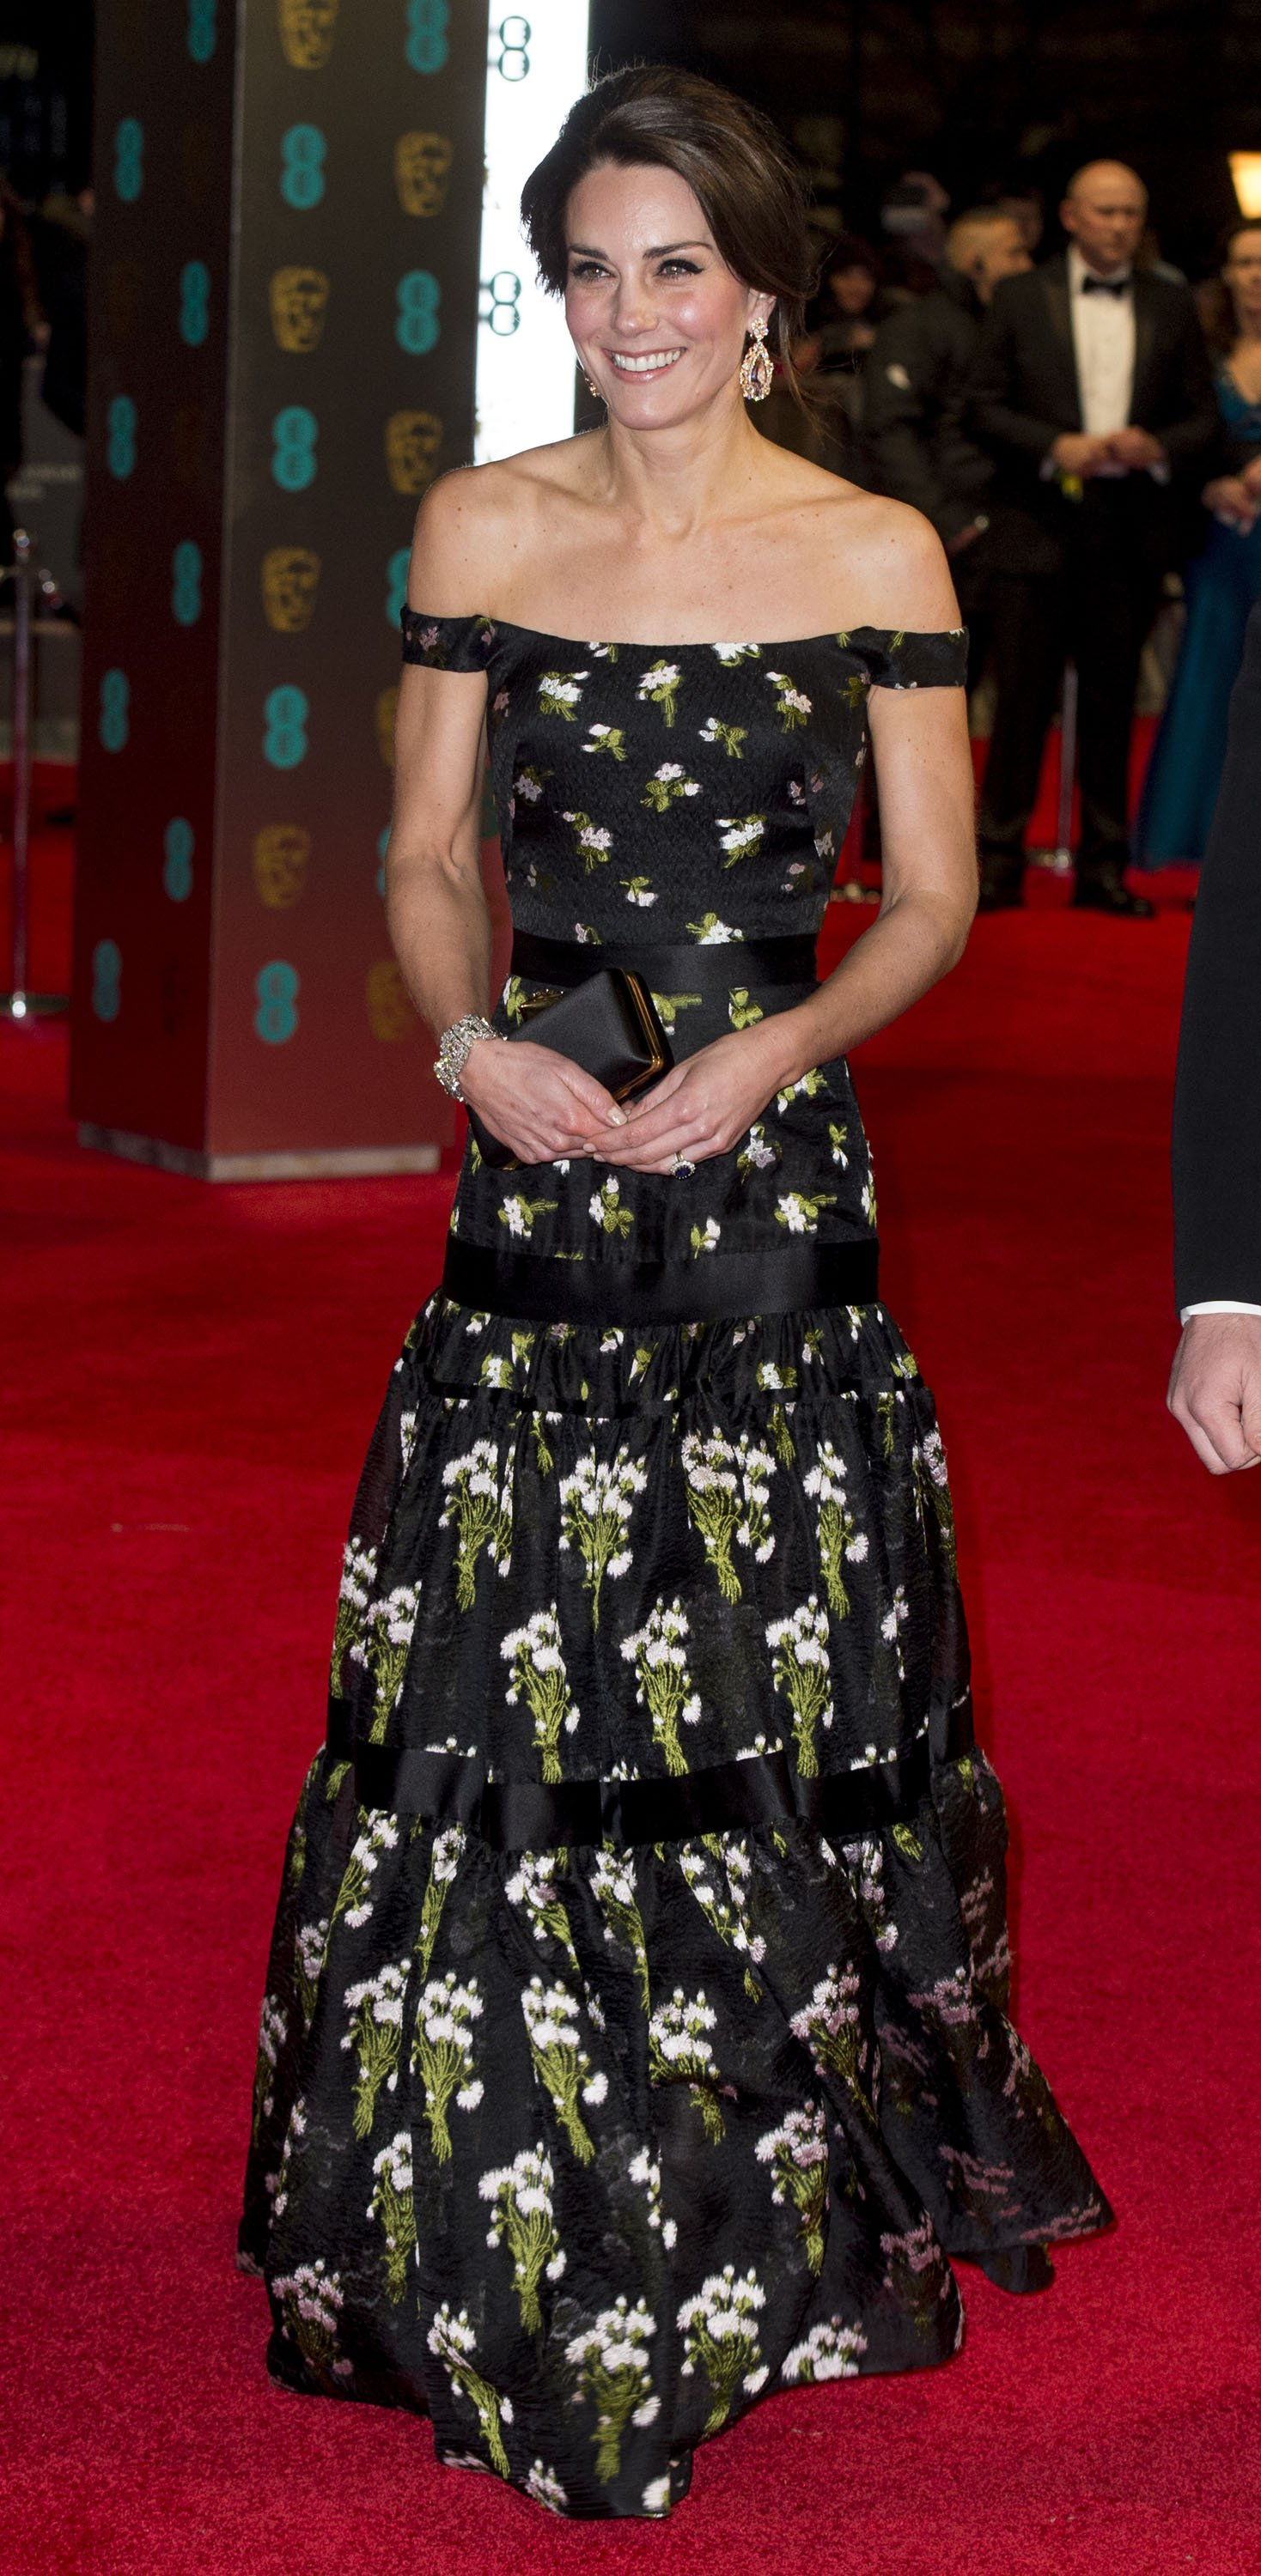 Kate Middleton en el Royal Albert Hall el 12 de febrero de 2017 en Londres, Inglaterra. | Foto: Getty Images